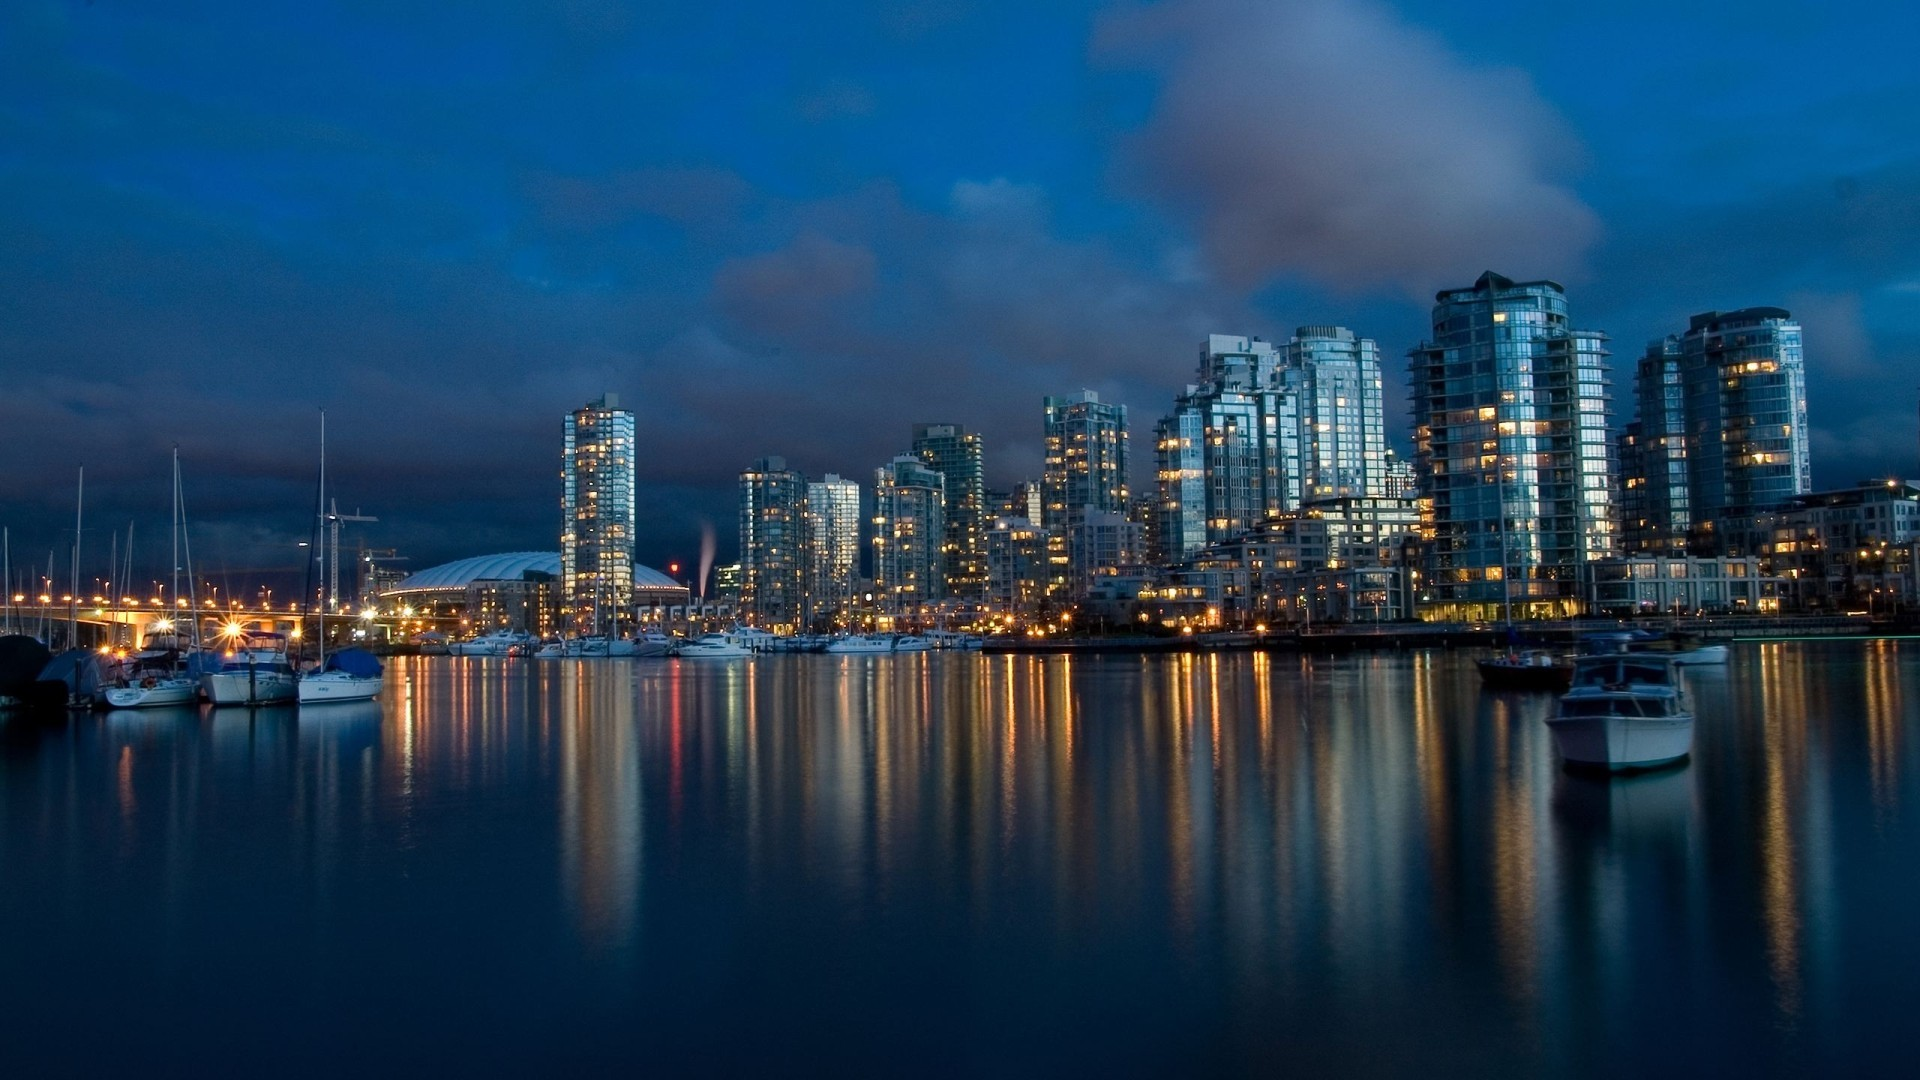 vancouver-harbor-world-hd-wallpaper-1920×1080-7088